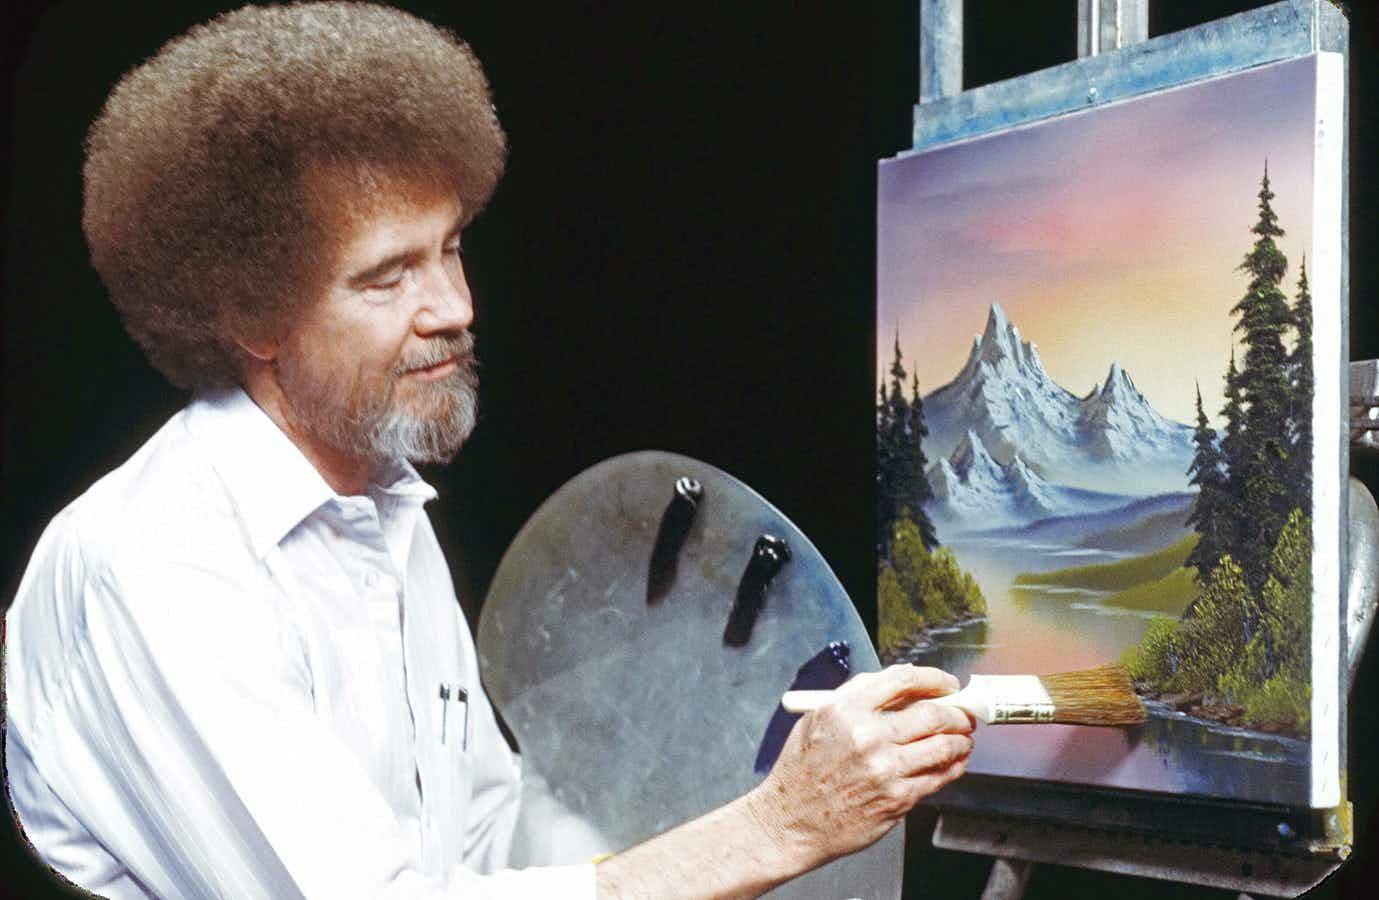 You can book Bob Ross painting sessions through the new Airbnb Experiences